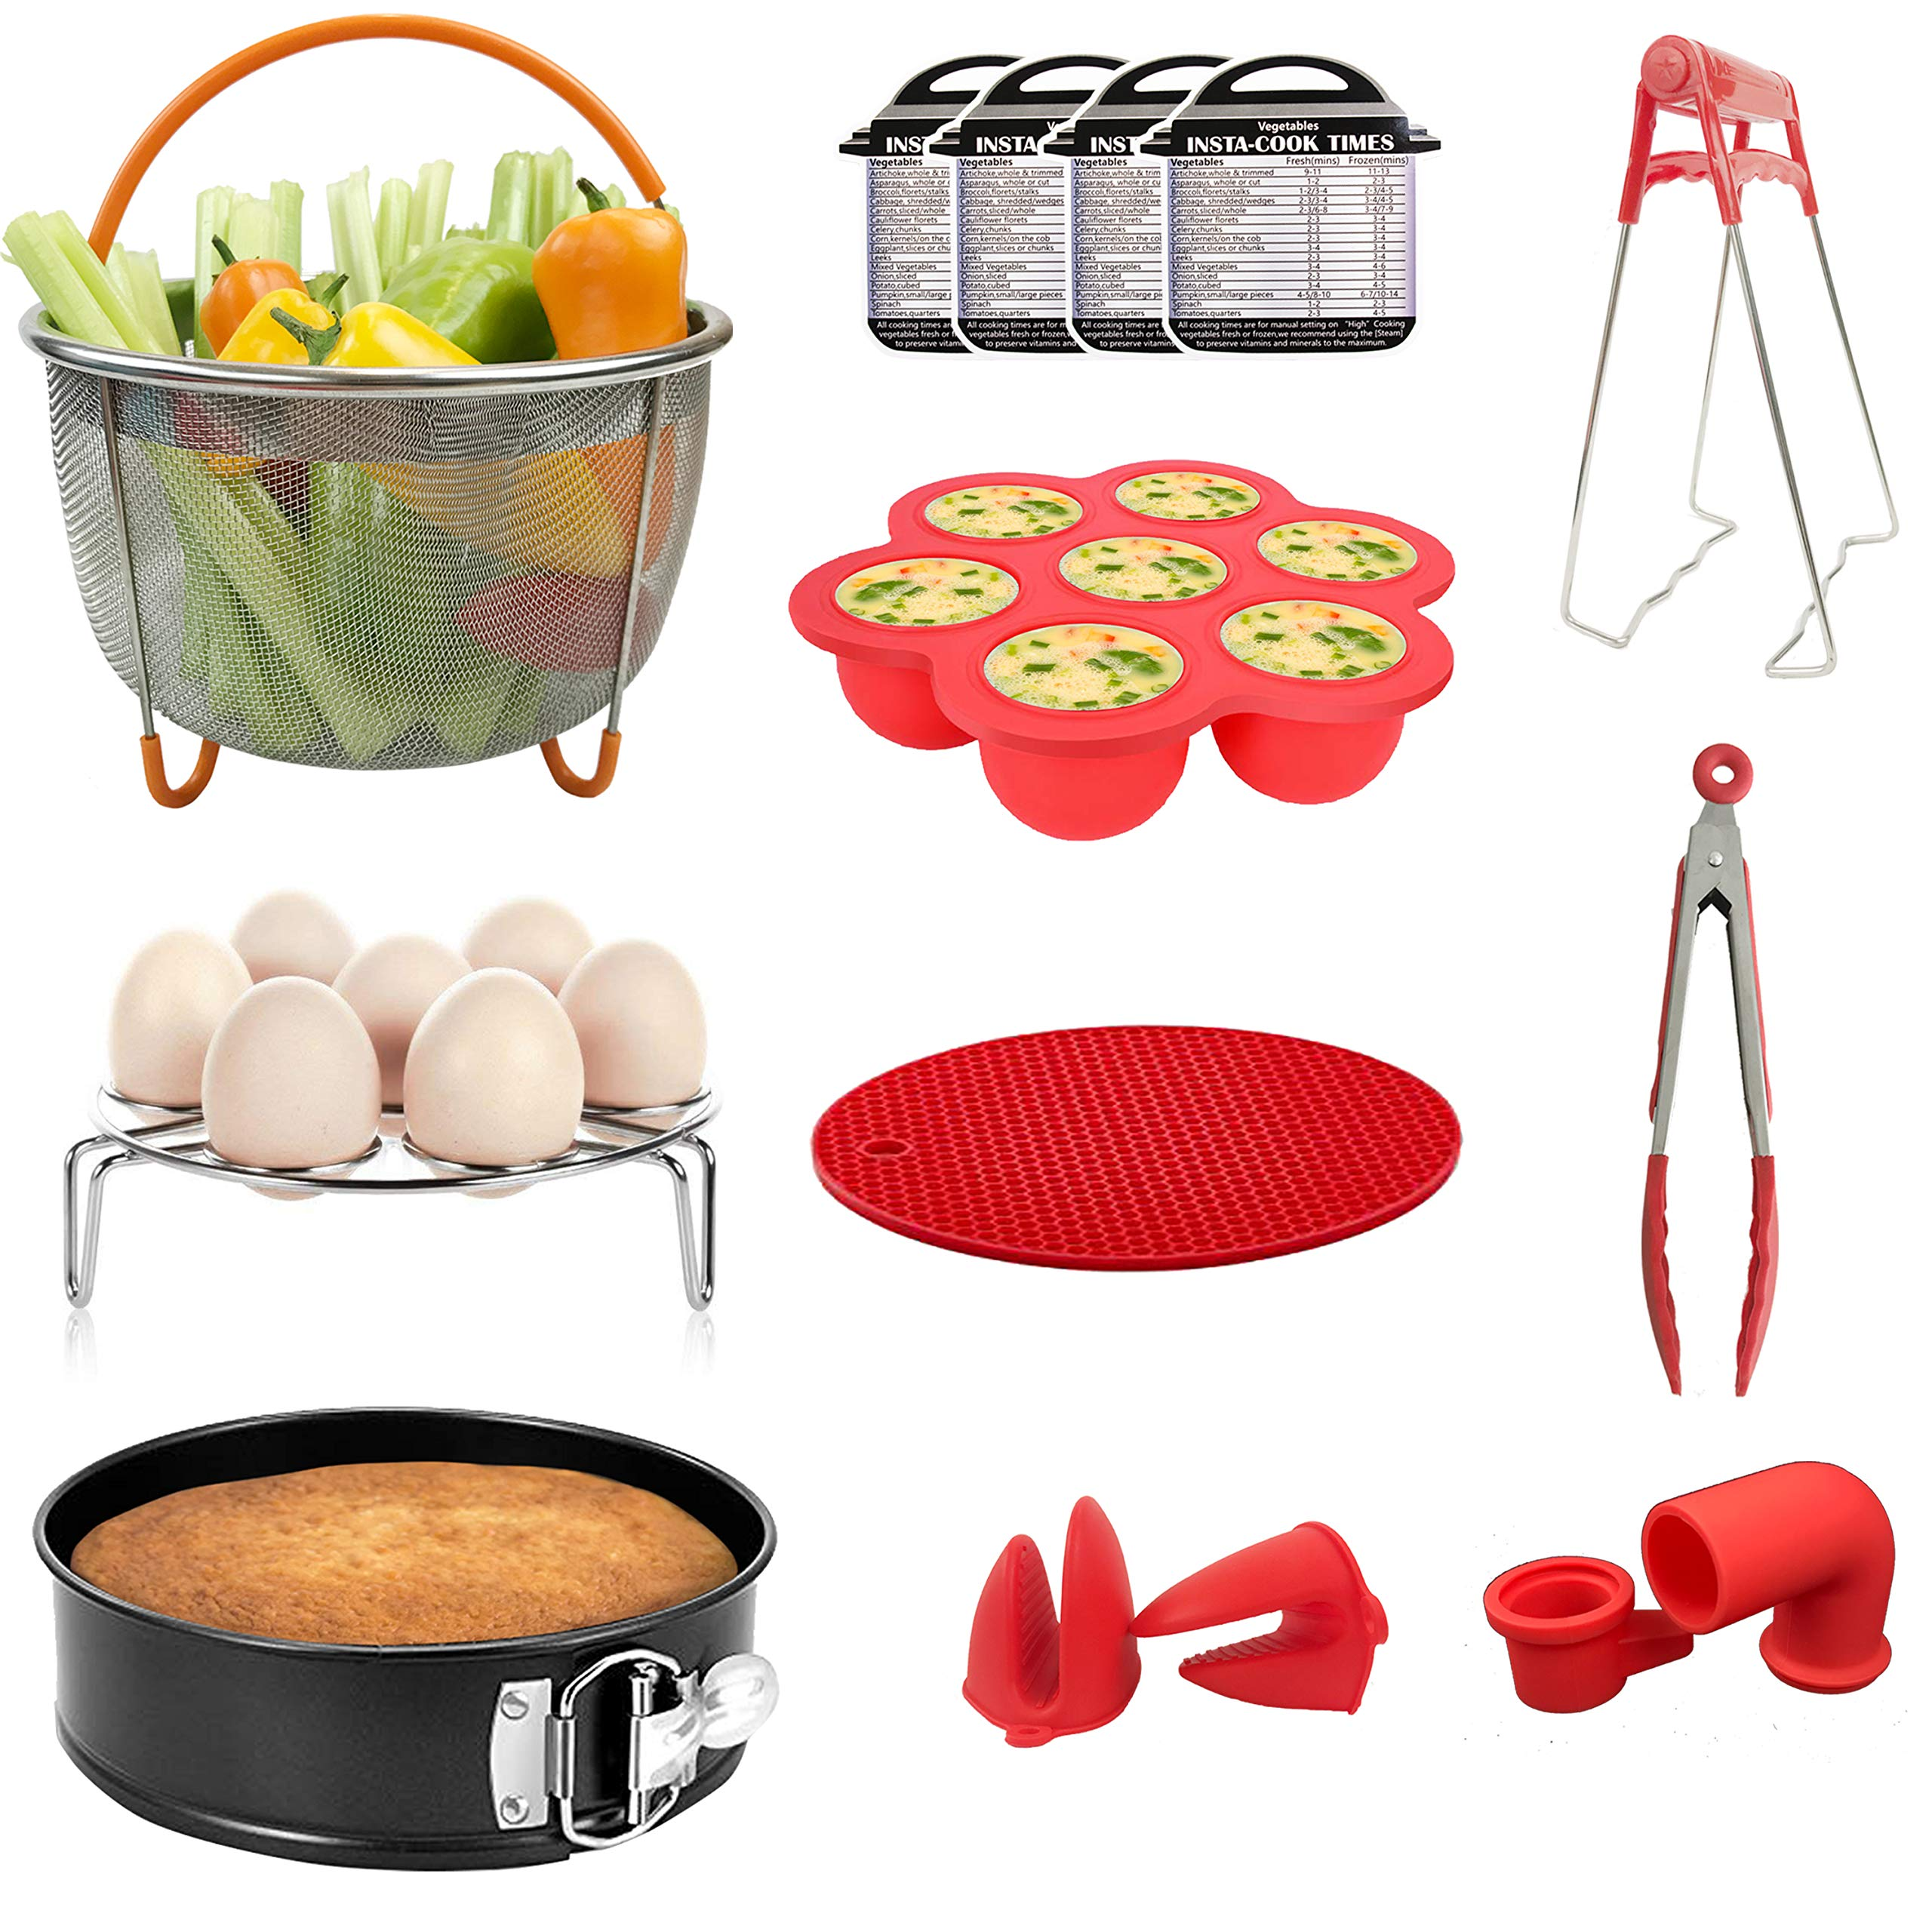 Maysa 14 Pcs Instant Pot Accessories Set | Steamer Basket | Spring Form Pan | Egg Bites Mold | Kitchen Tongs | Mitts | Silicone Mat | Magnet Cheat Sheet Compatible with 5,6,8 Qt Pressure Cookers